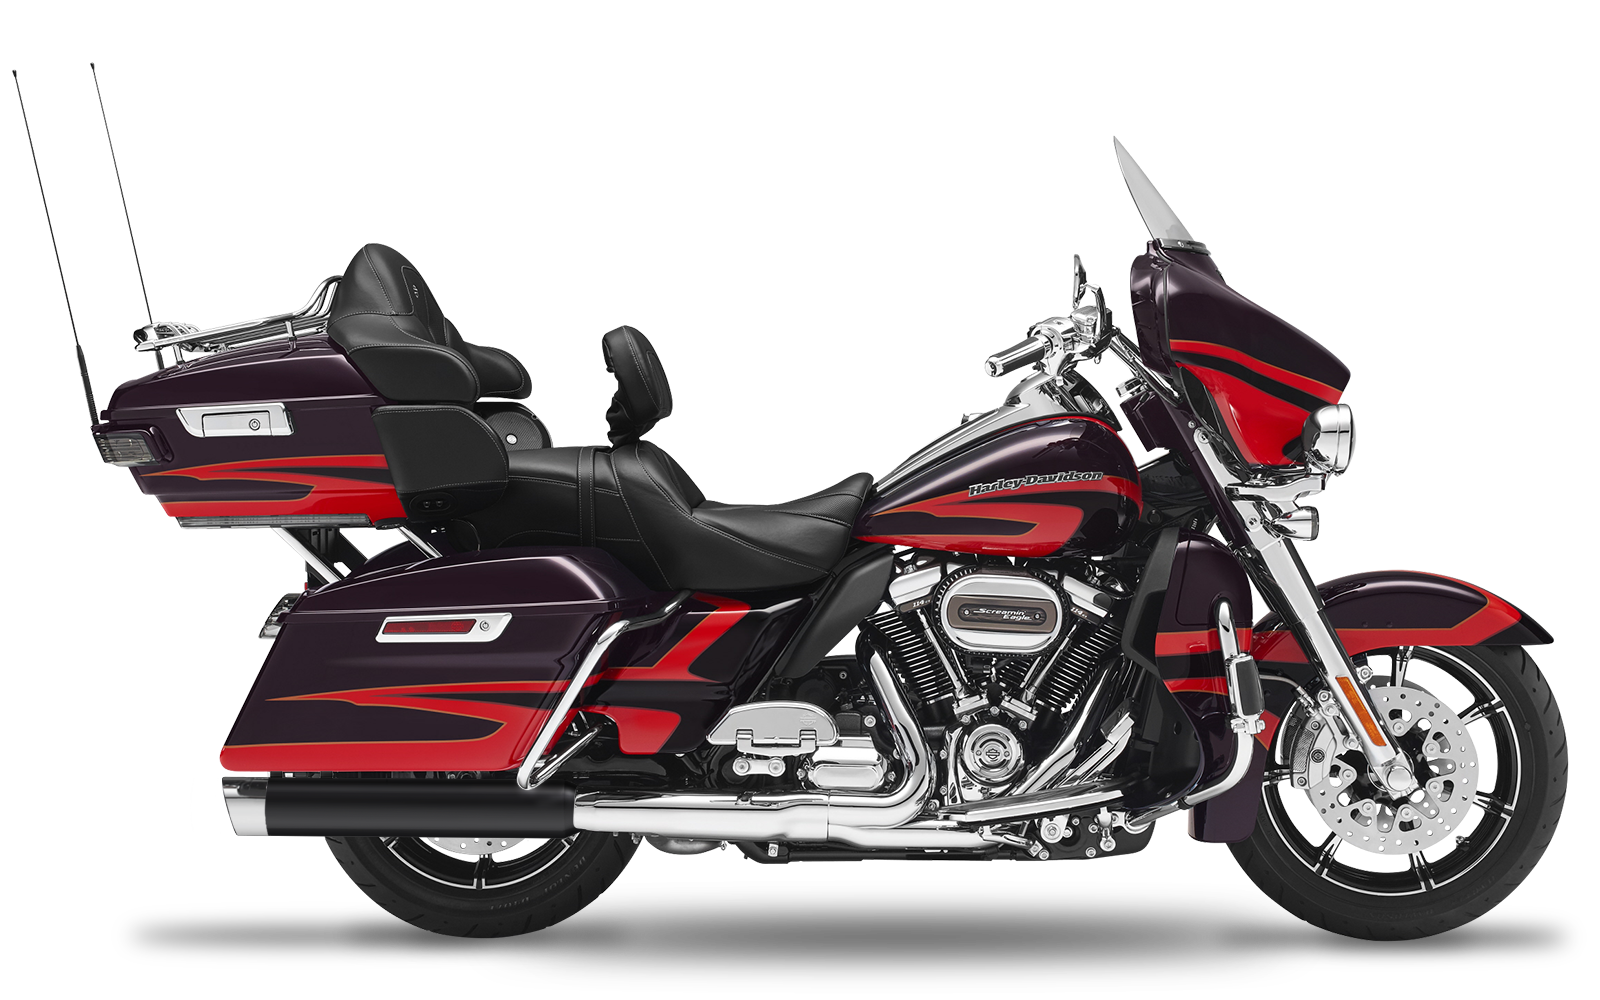 Touring - Road Glide Limited - ME114 - 2020 - Endtöpfe